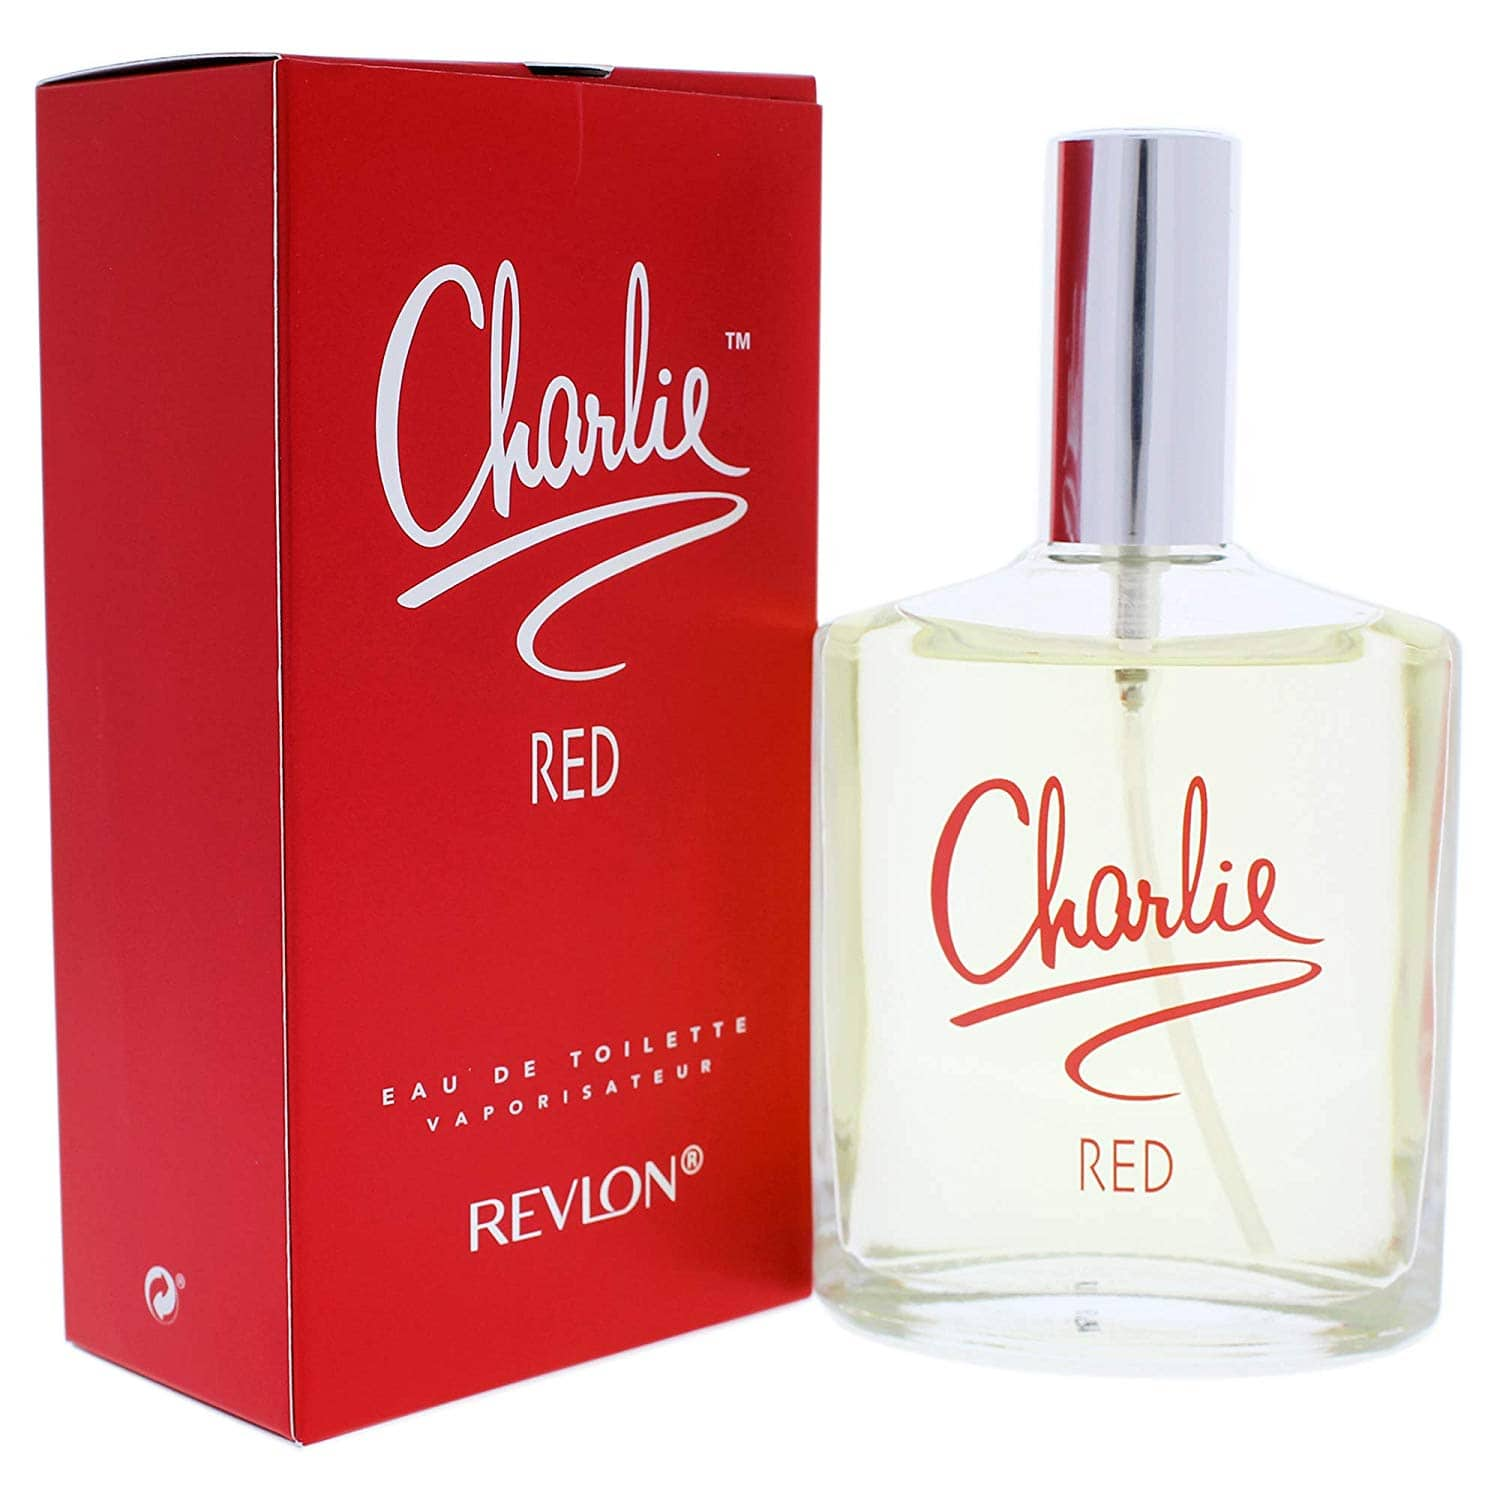 Revlon Charlie Eau De Toilette Spray for Women, Red, 3.4 Ounce: $5.18 or less w/S&S